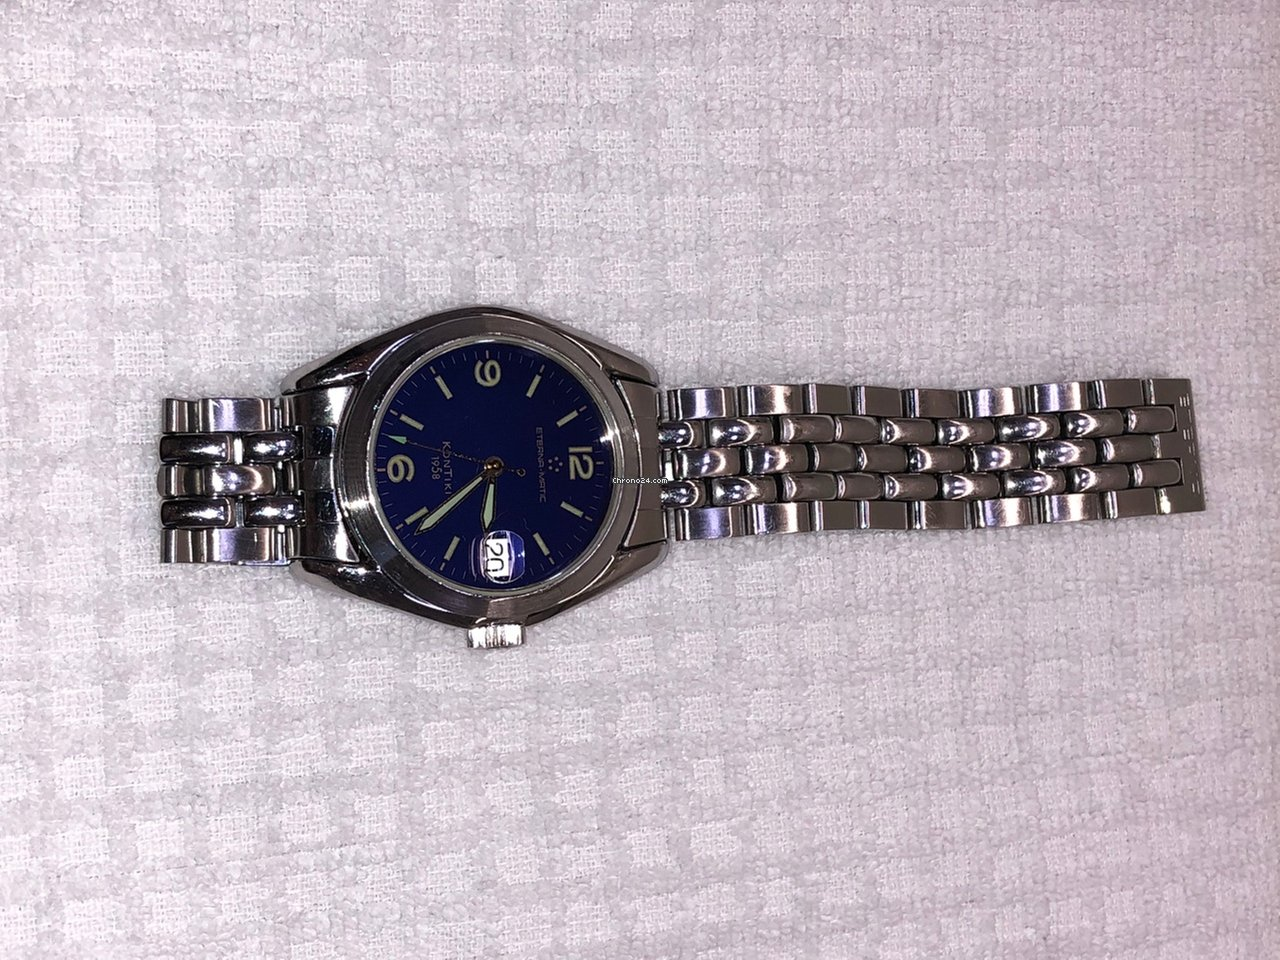 d4473d4de17 Eterna Kontiki 1958 Automatic Date for  749 for sale from a Private Seller  on Chrono24